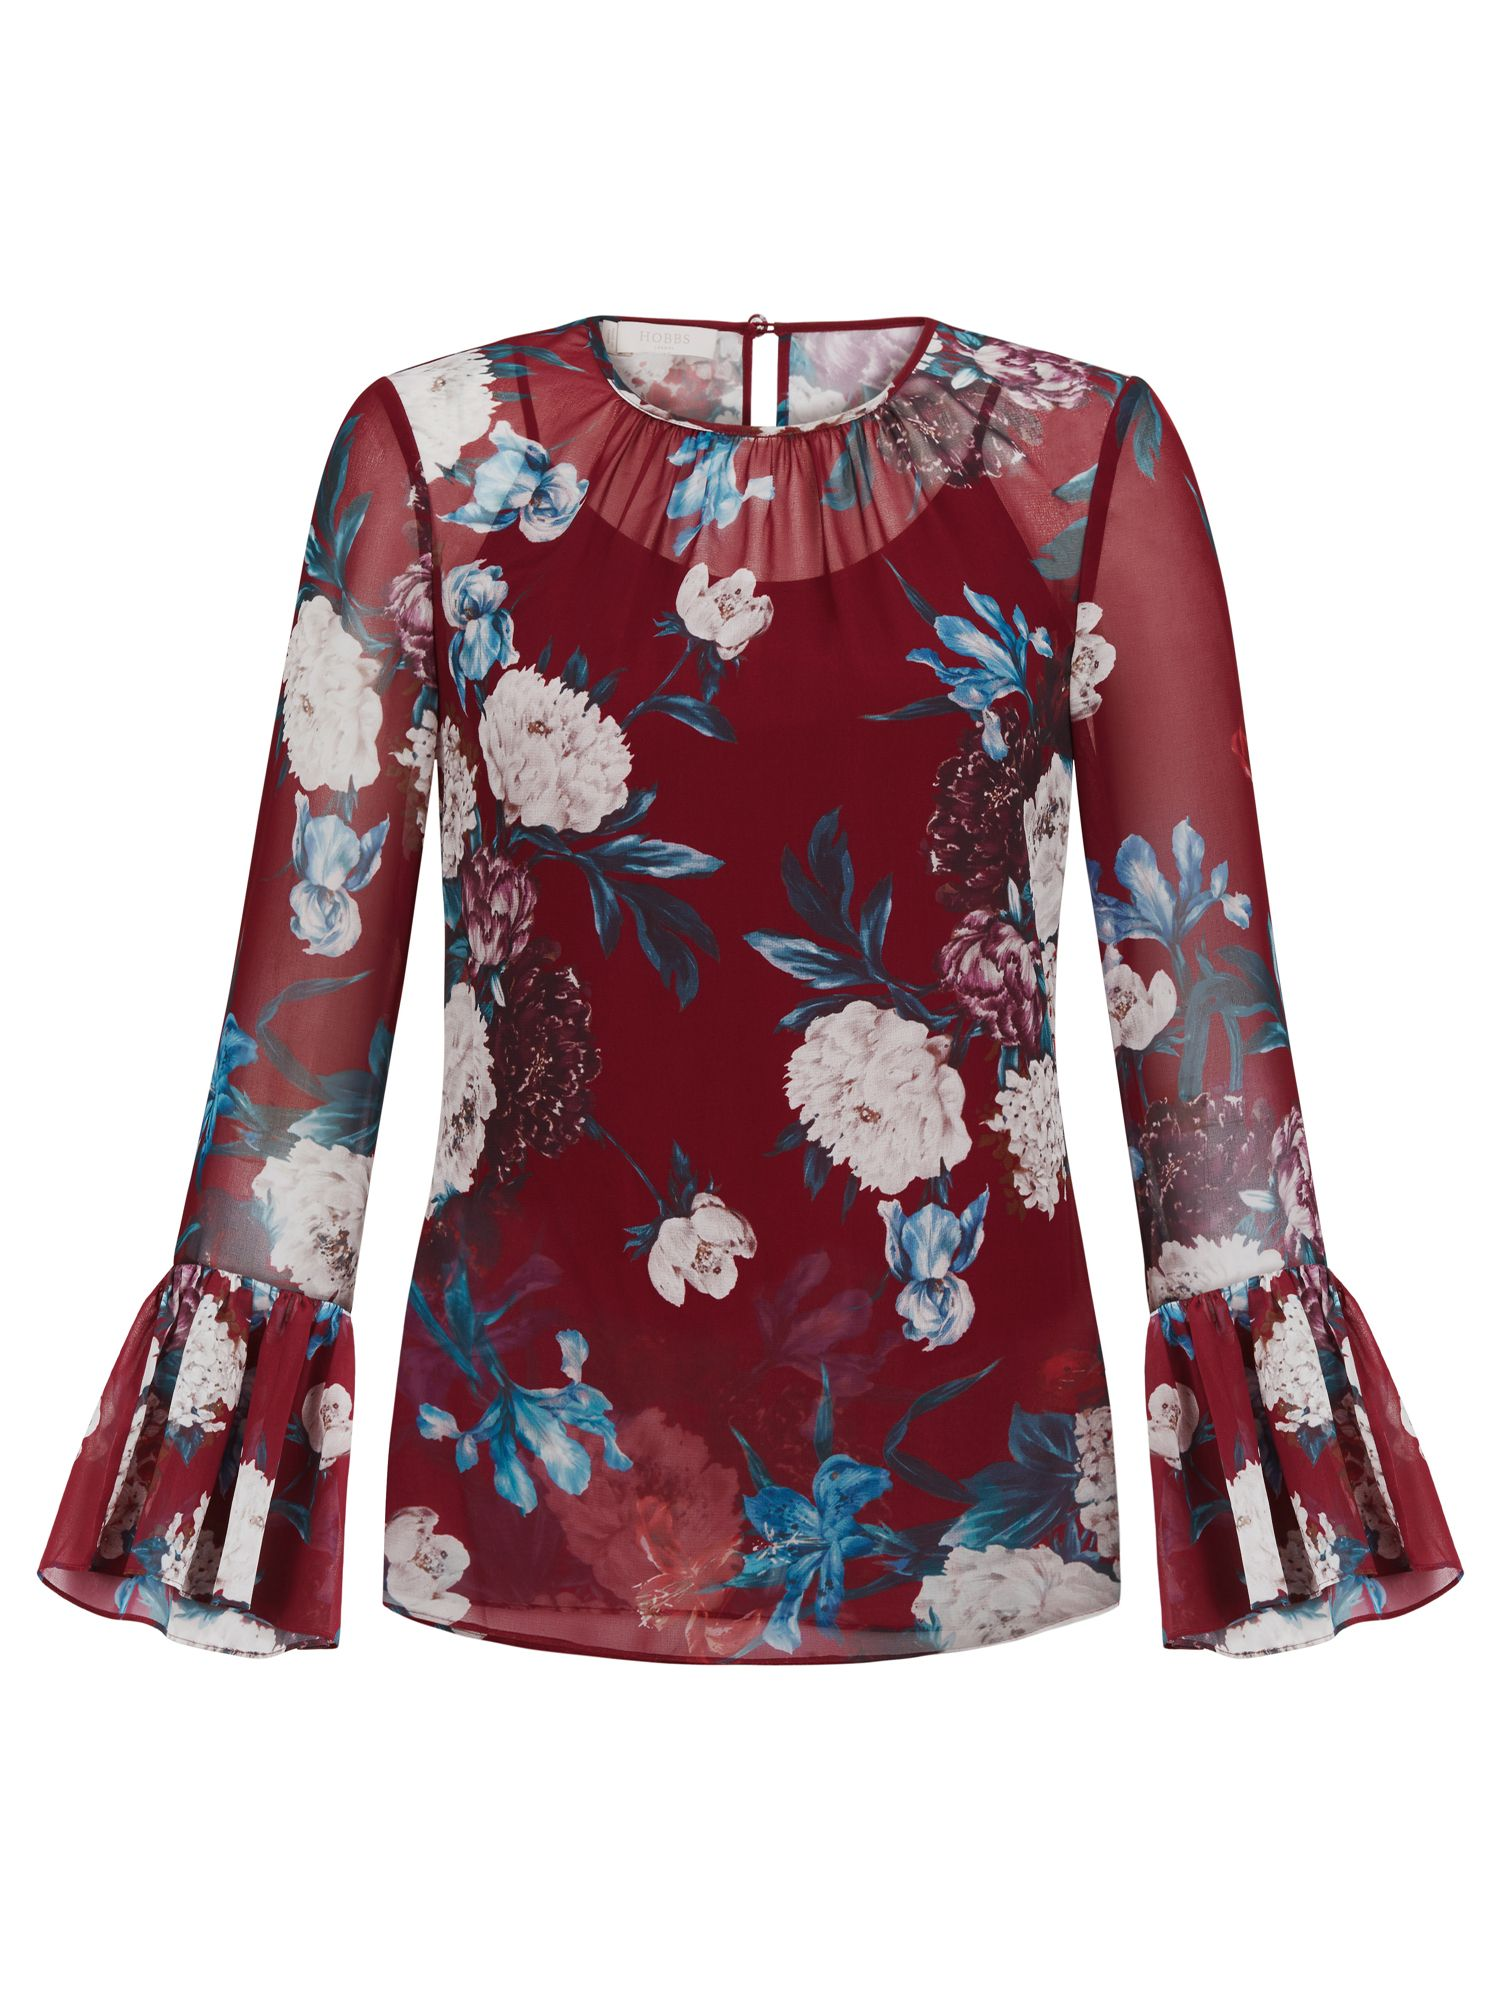 Hobbs Malin Blouse, Multi-Coloured